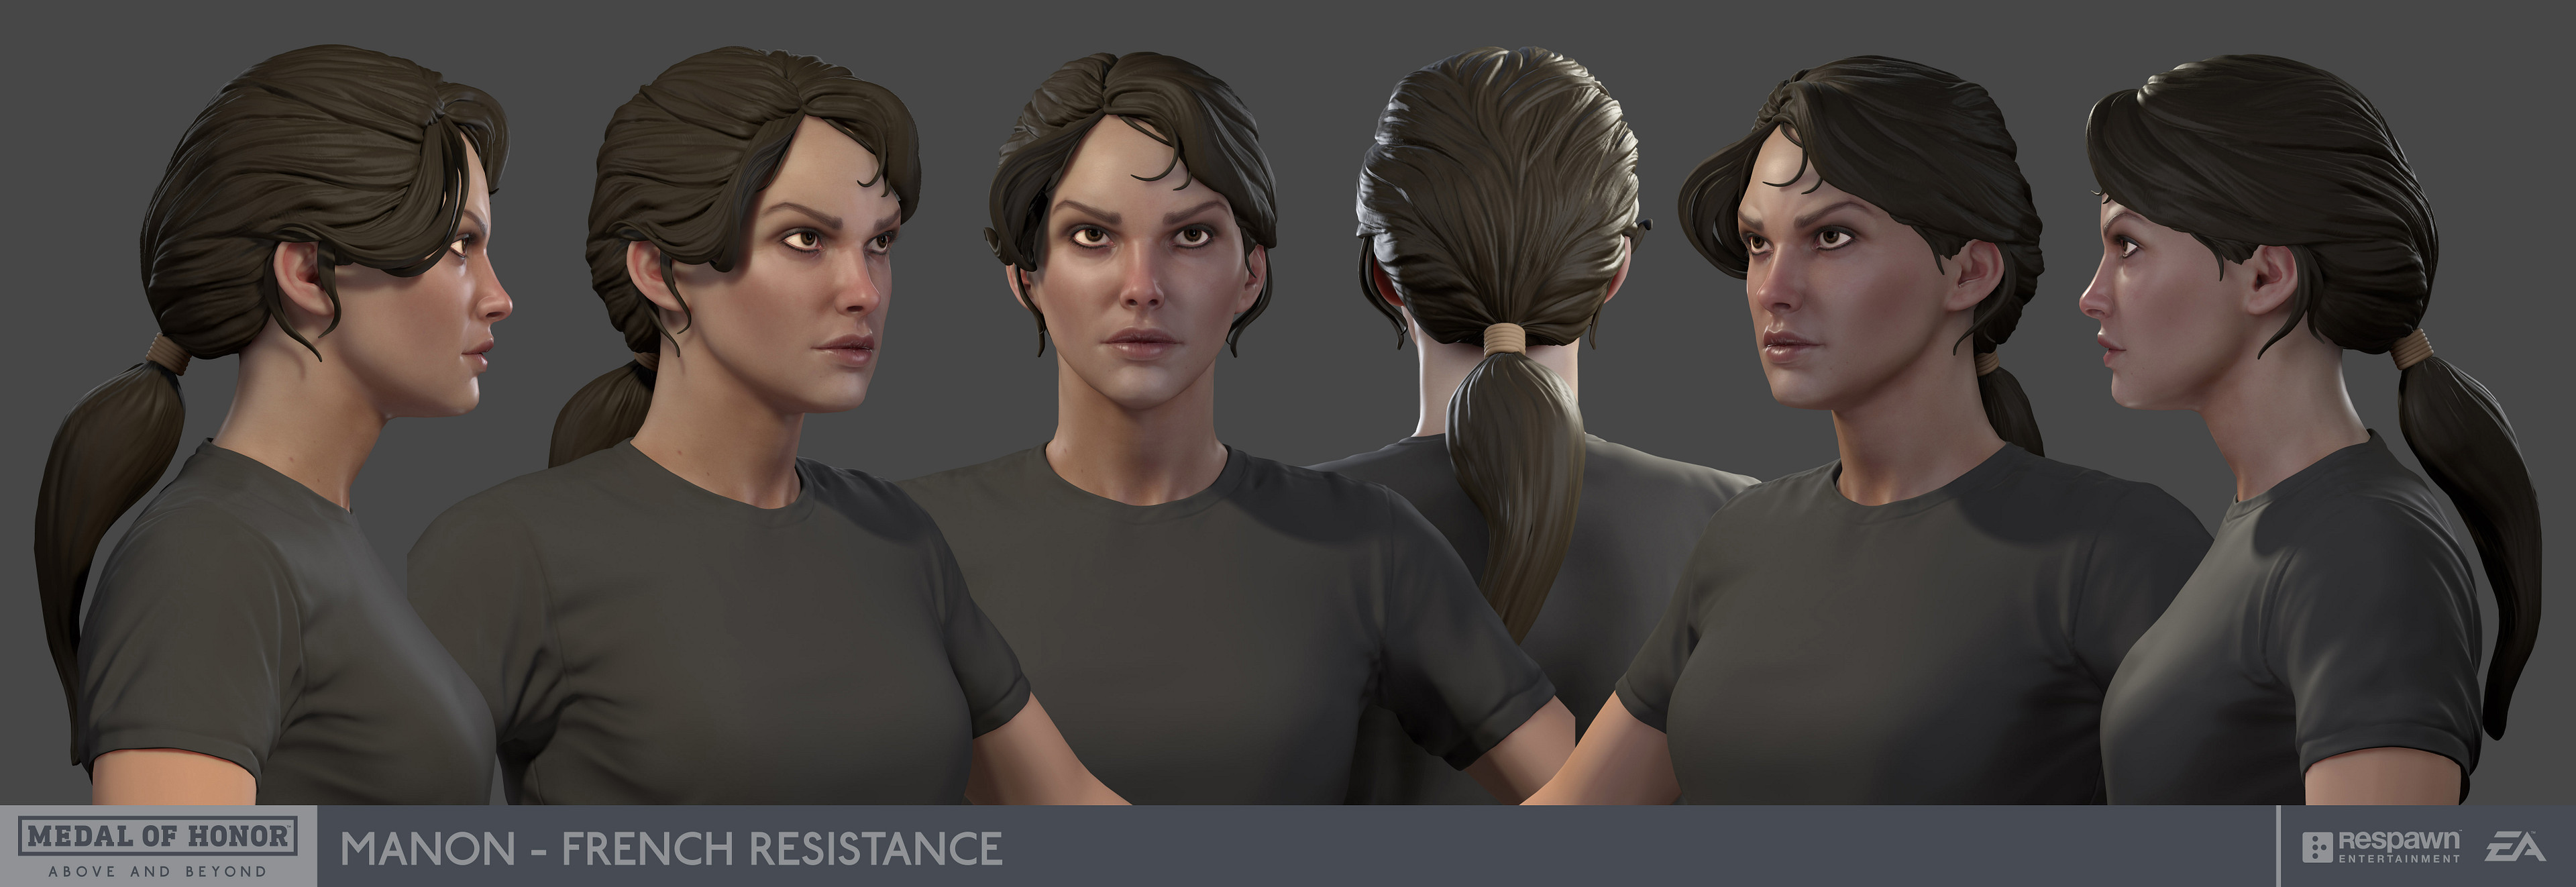 early look at design